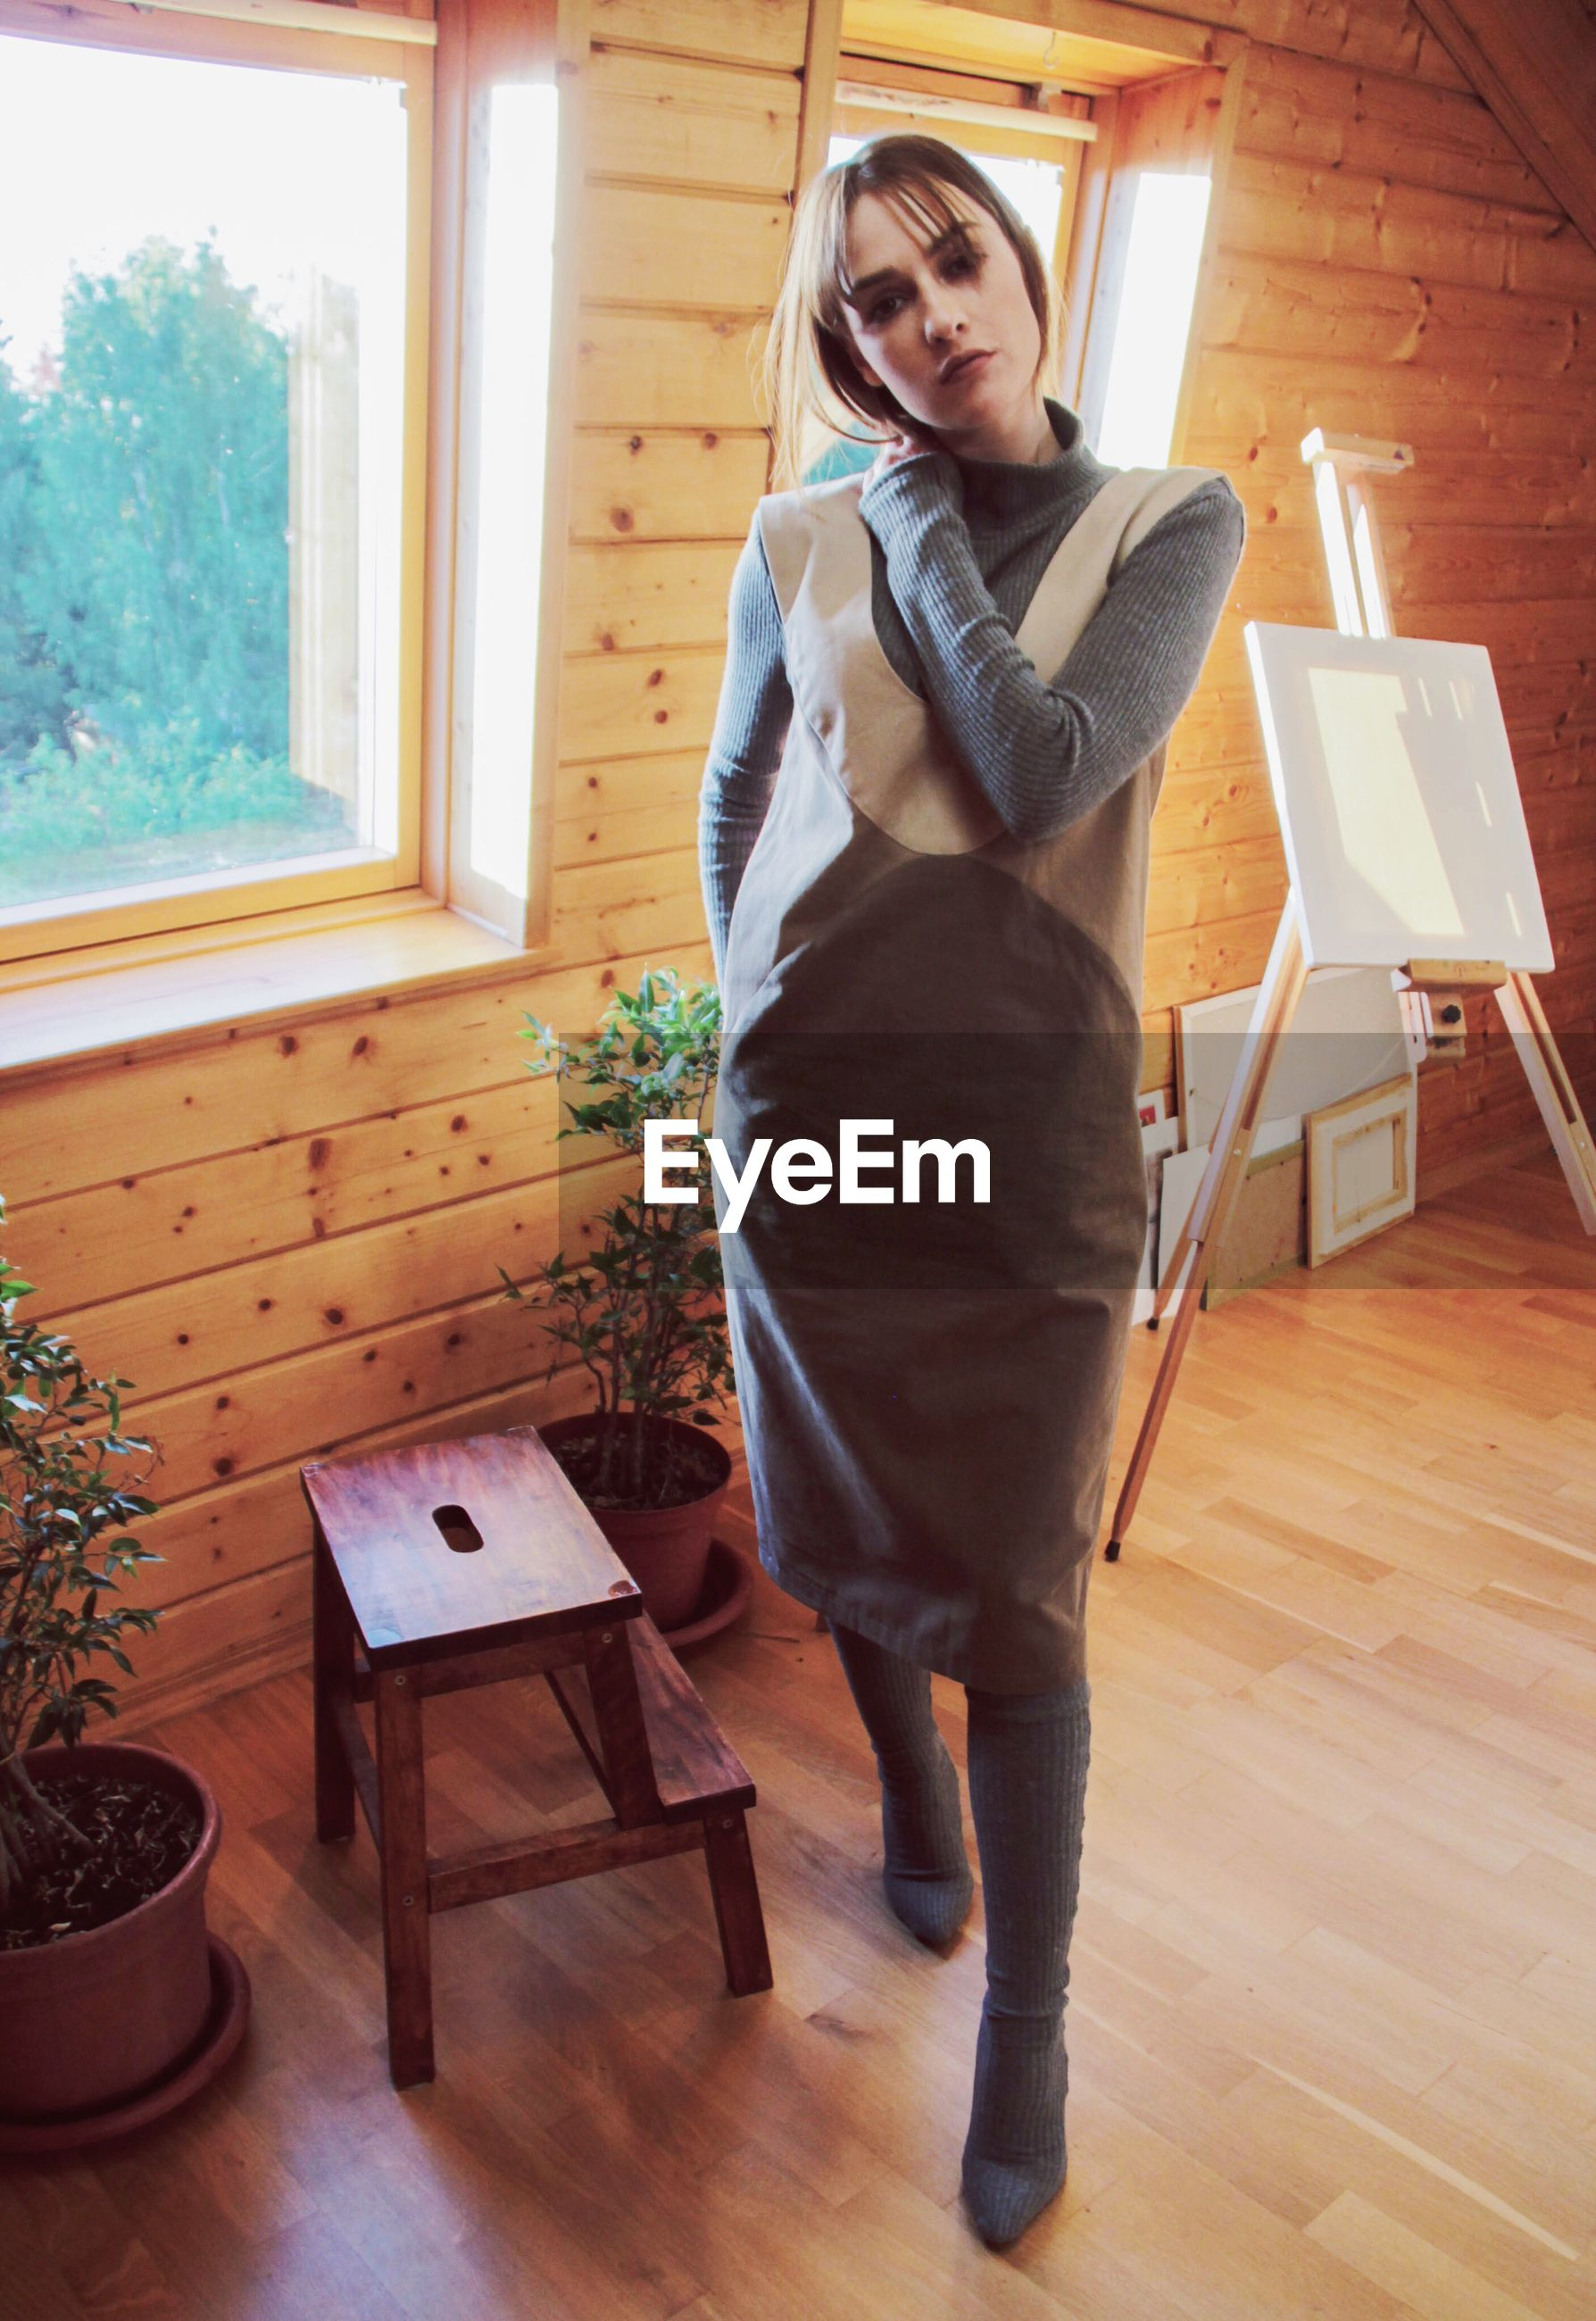 indoors, one person, young adult, full length, young women, front view, hardwood floor, window, real people, standing, table, home interior, looking at camera, day